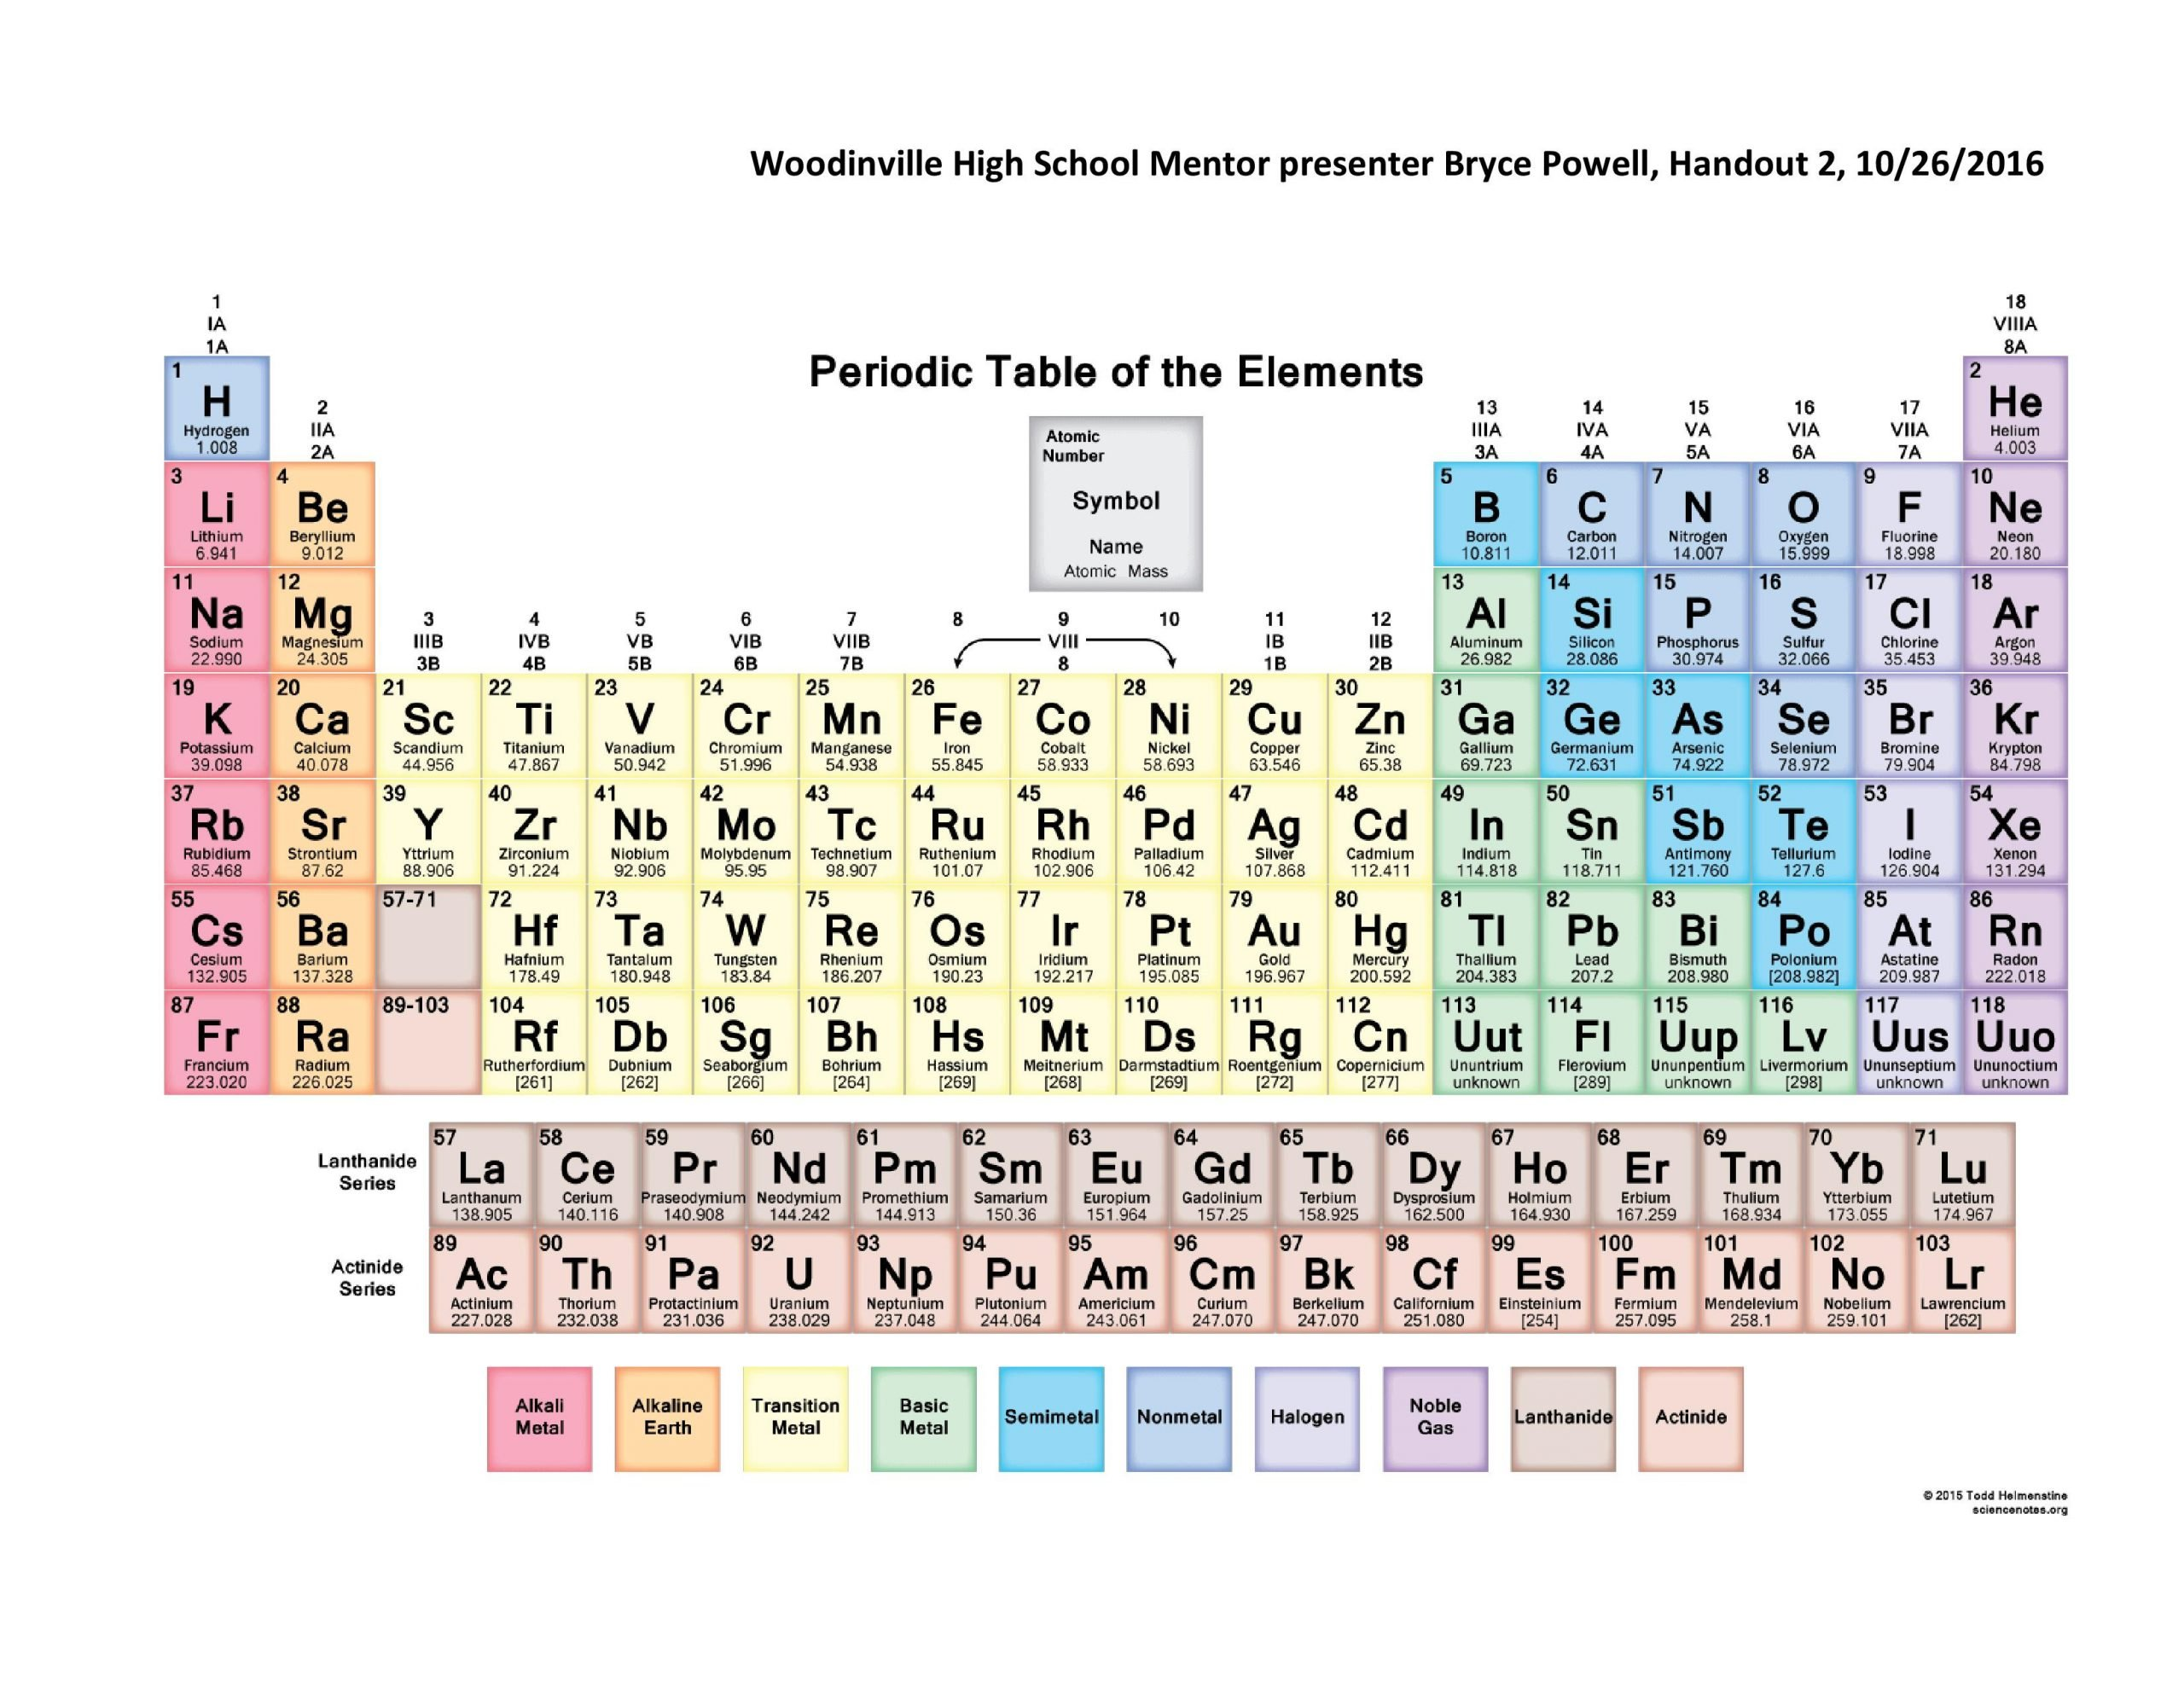 Periodic Table Fill In Worksheet Handout 2 Periodic Table with Mr Powell